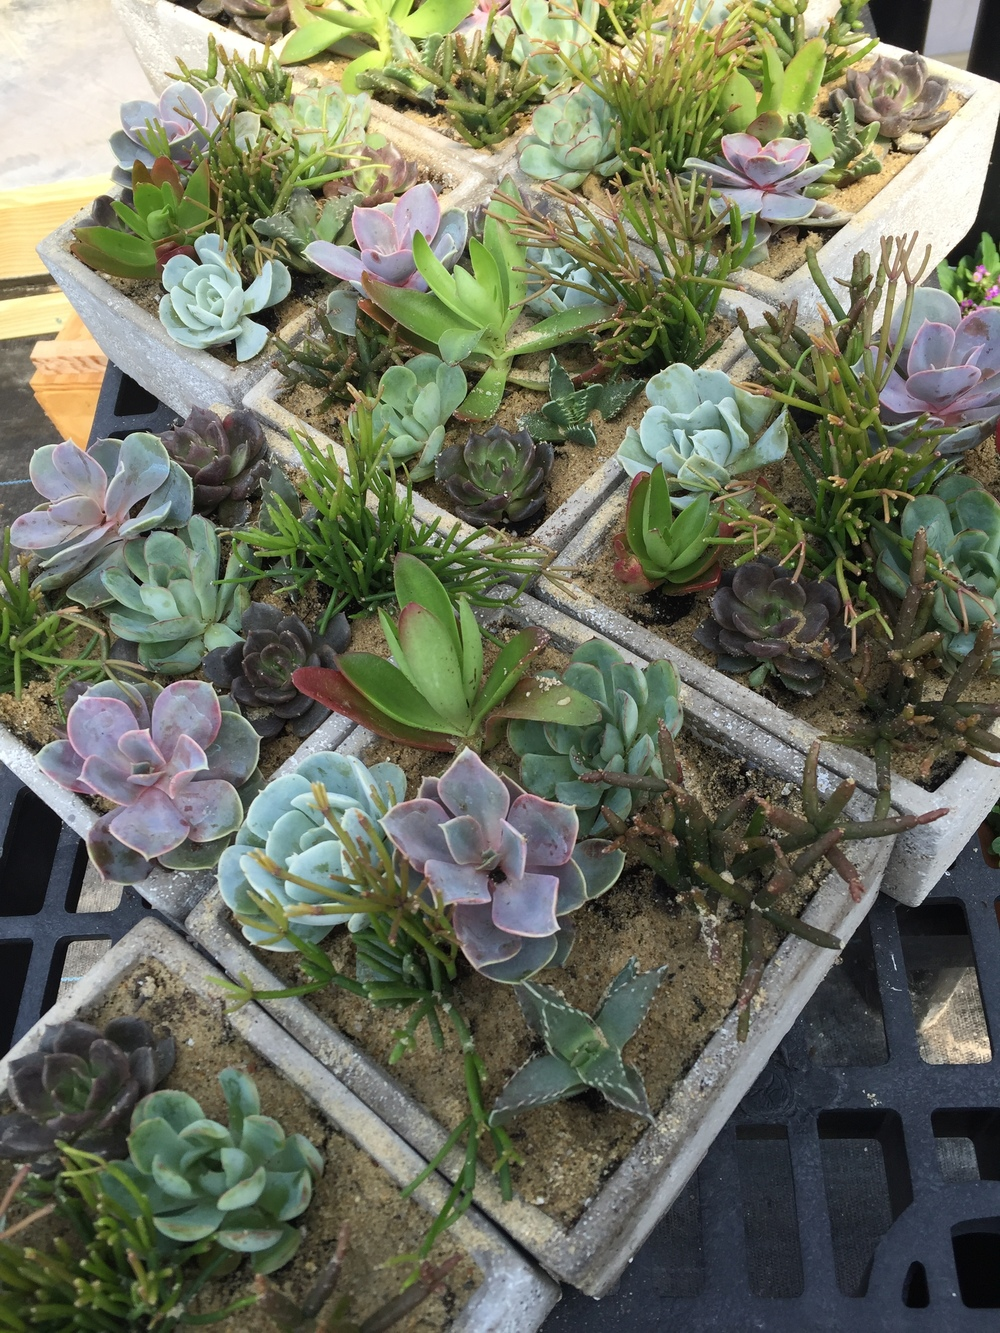 Ann made more succulent gardens